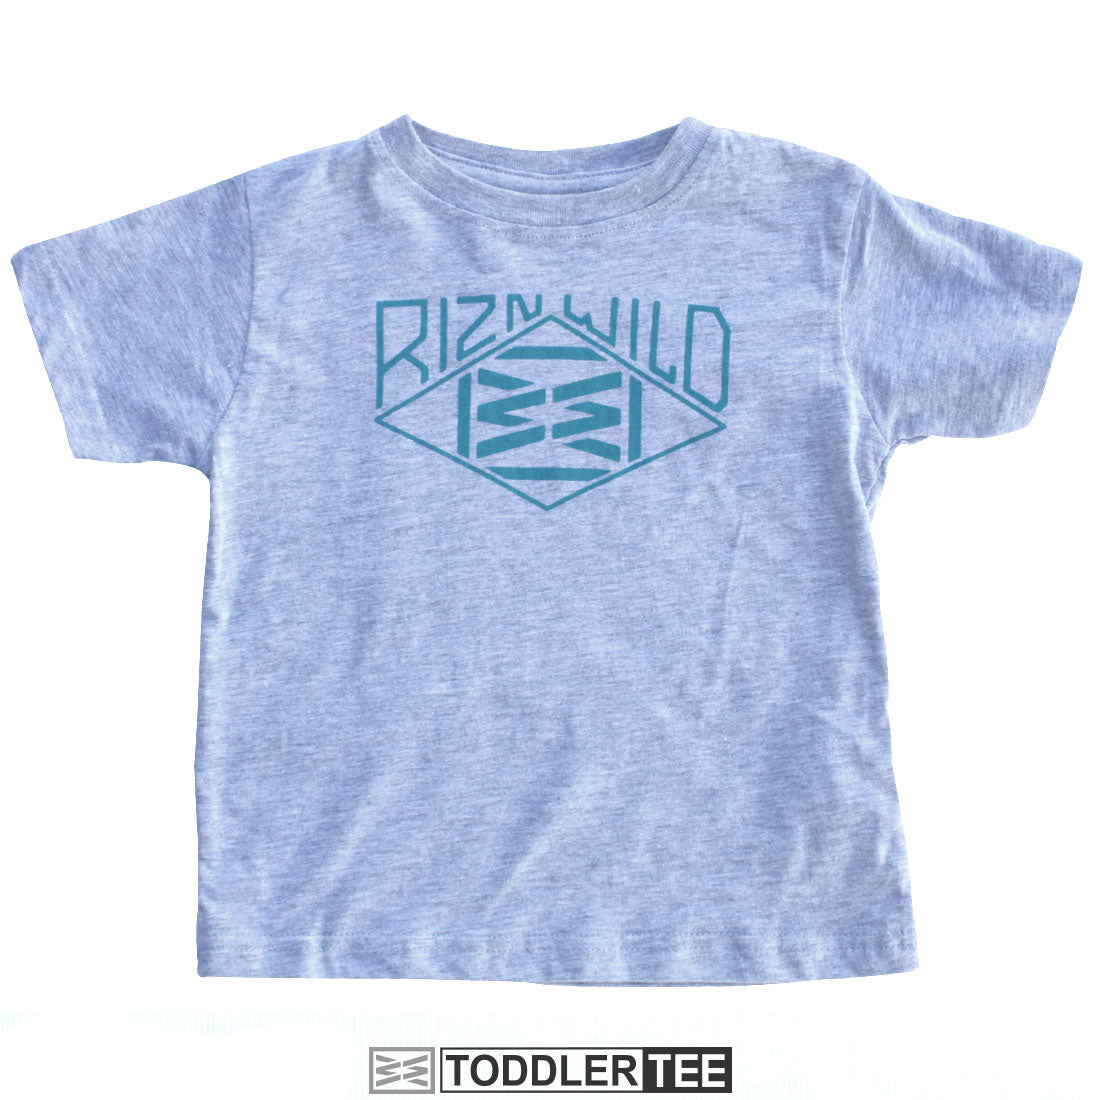 Sign Toddler Soft Tee in Athletic Heather